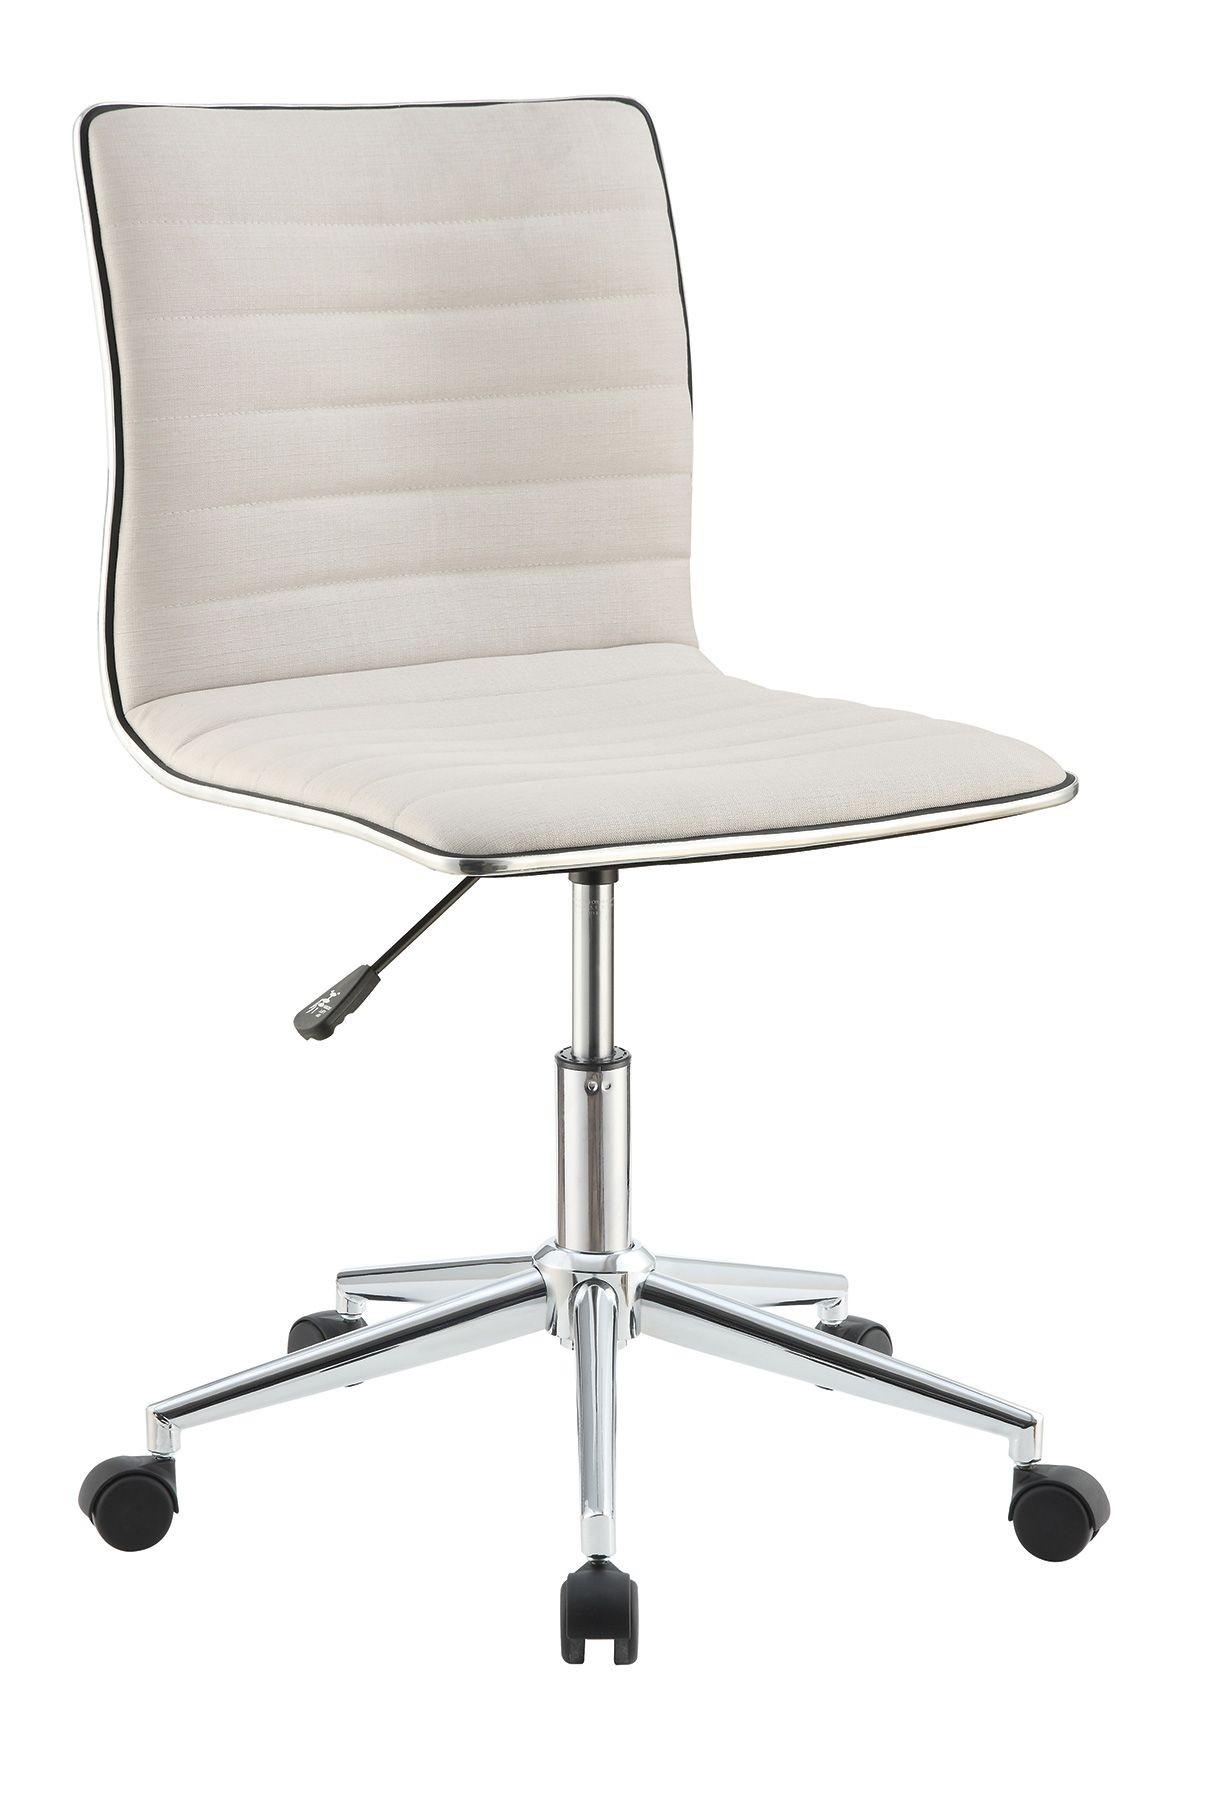 800726 cream office chair from coaster 800726 coleman for Cream office chair